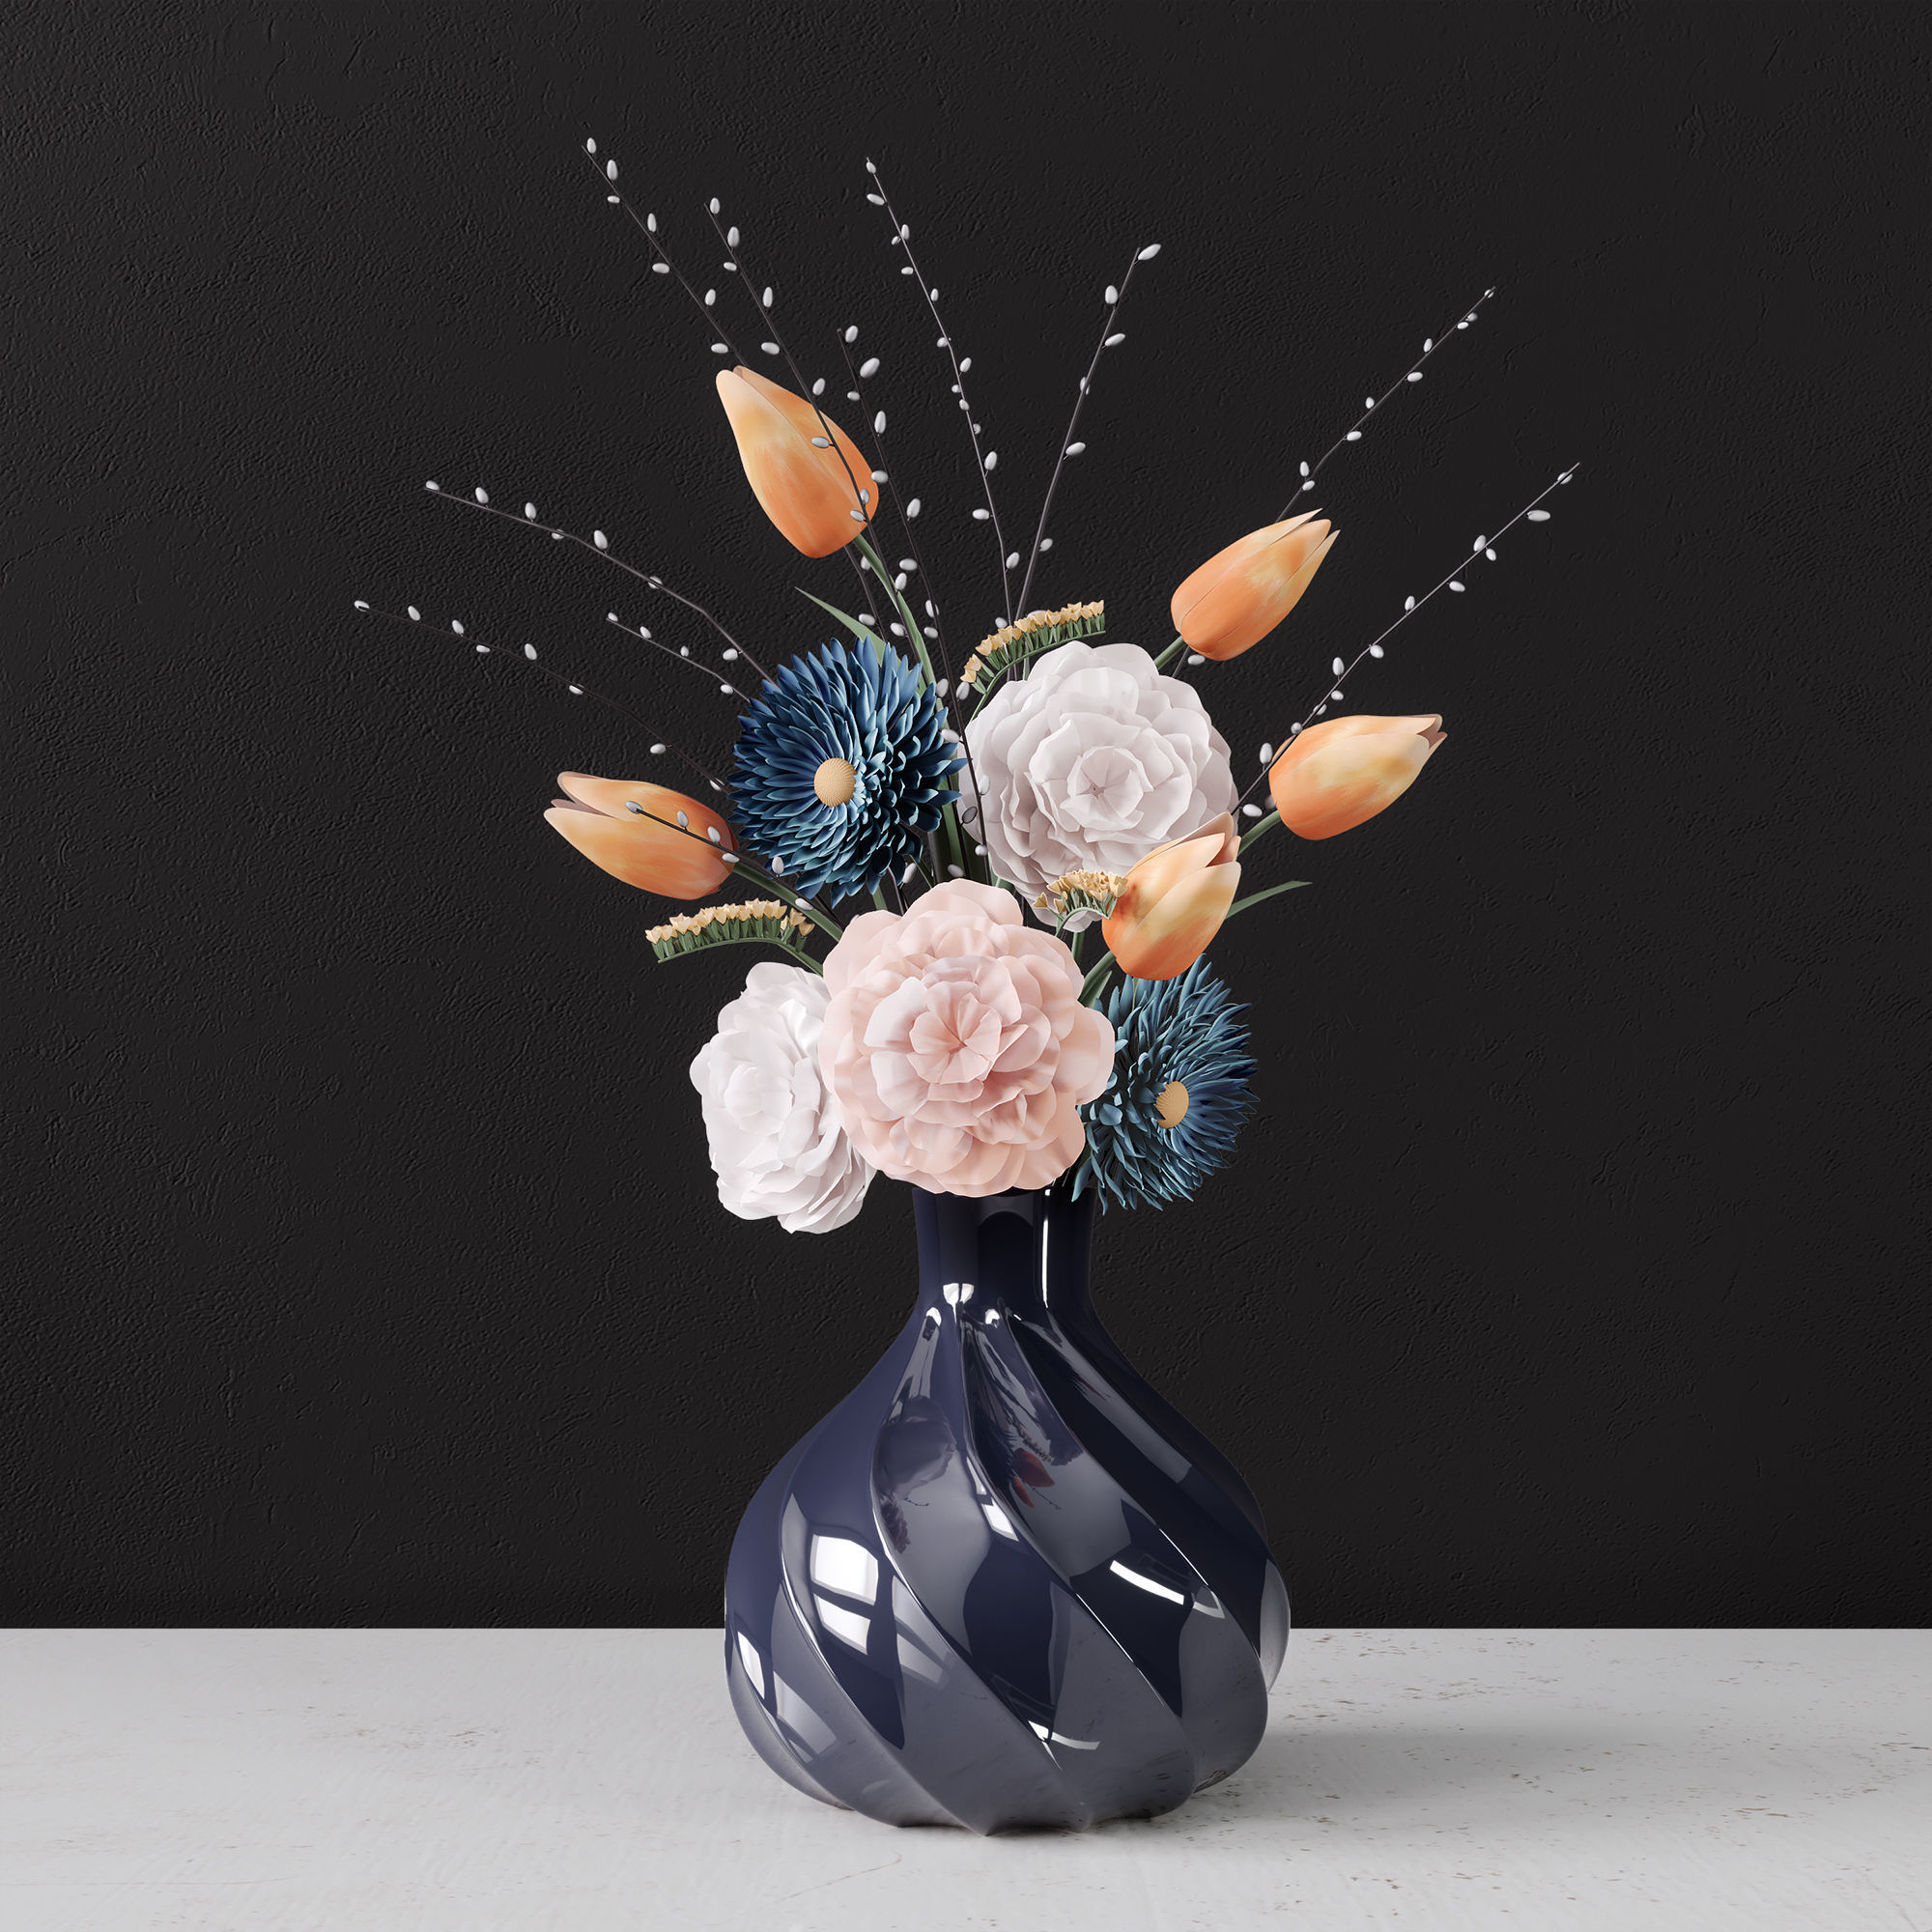 Decor bouquet of flowers in a glass vase